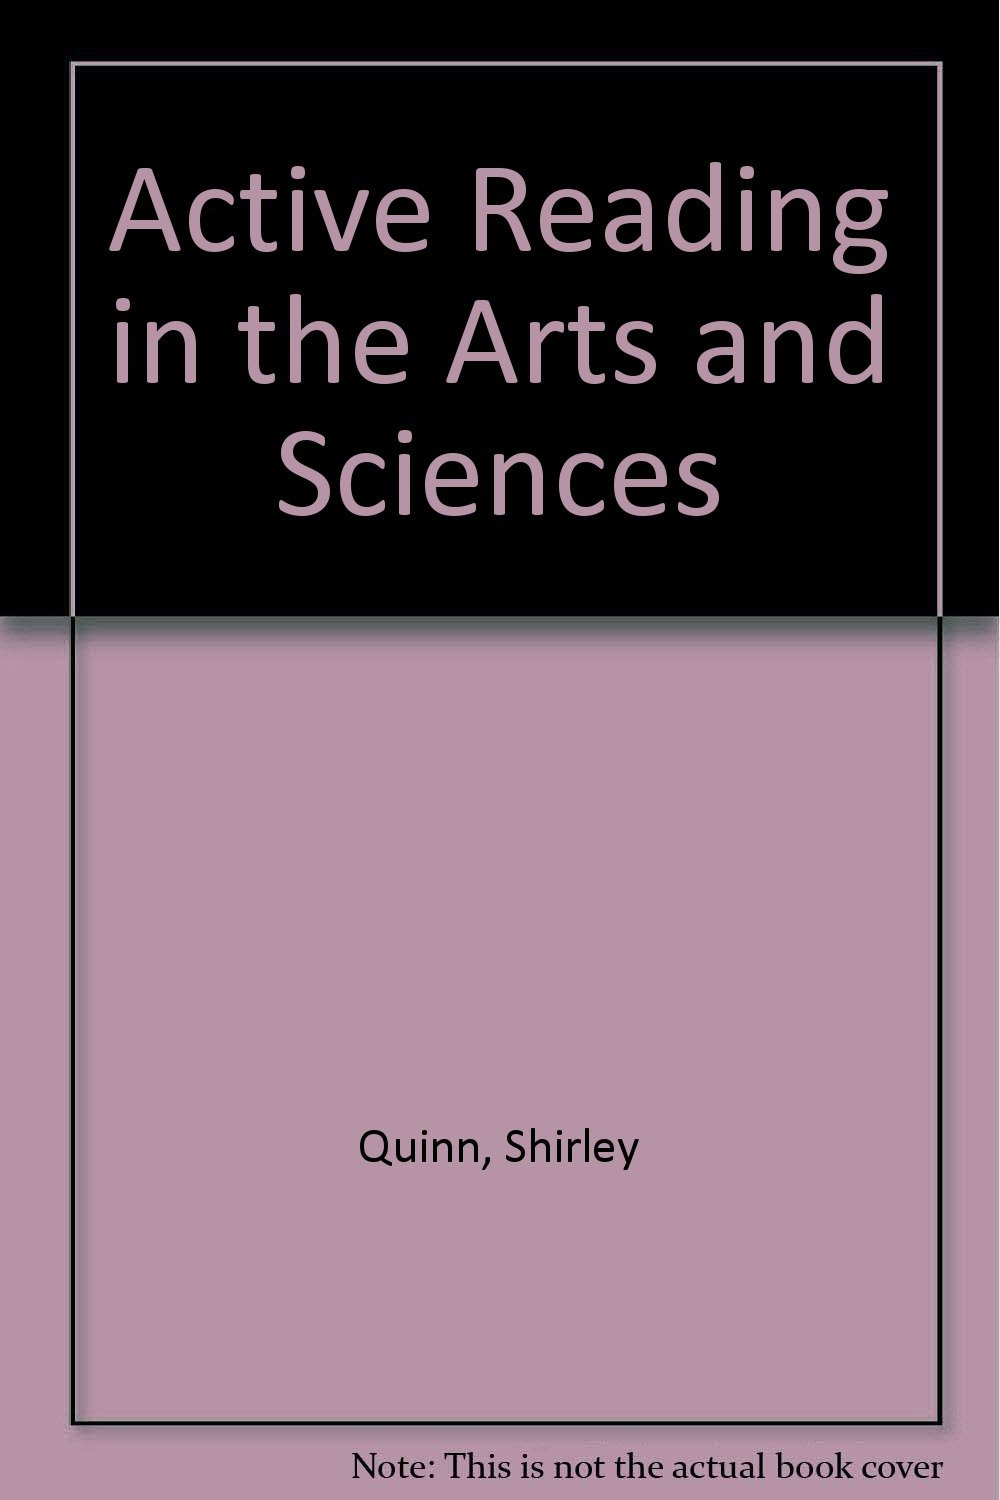 Active Reading in the Arts and Sciences by Allyn & Bacon